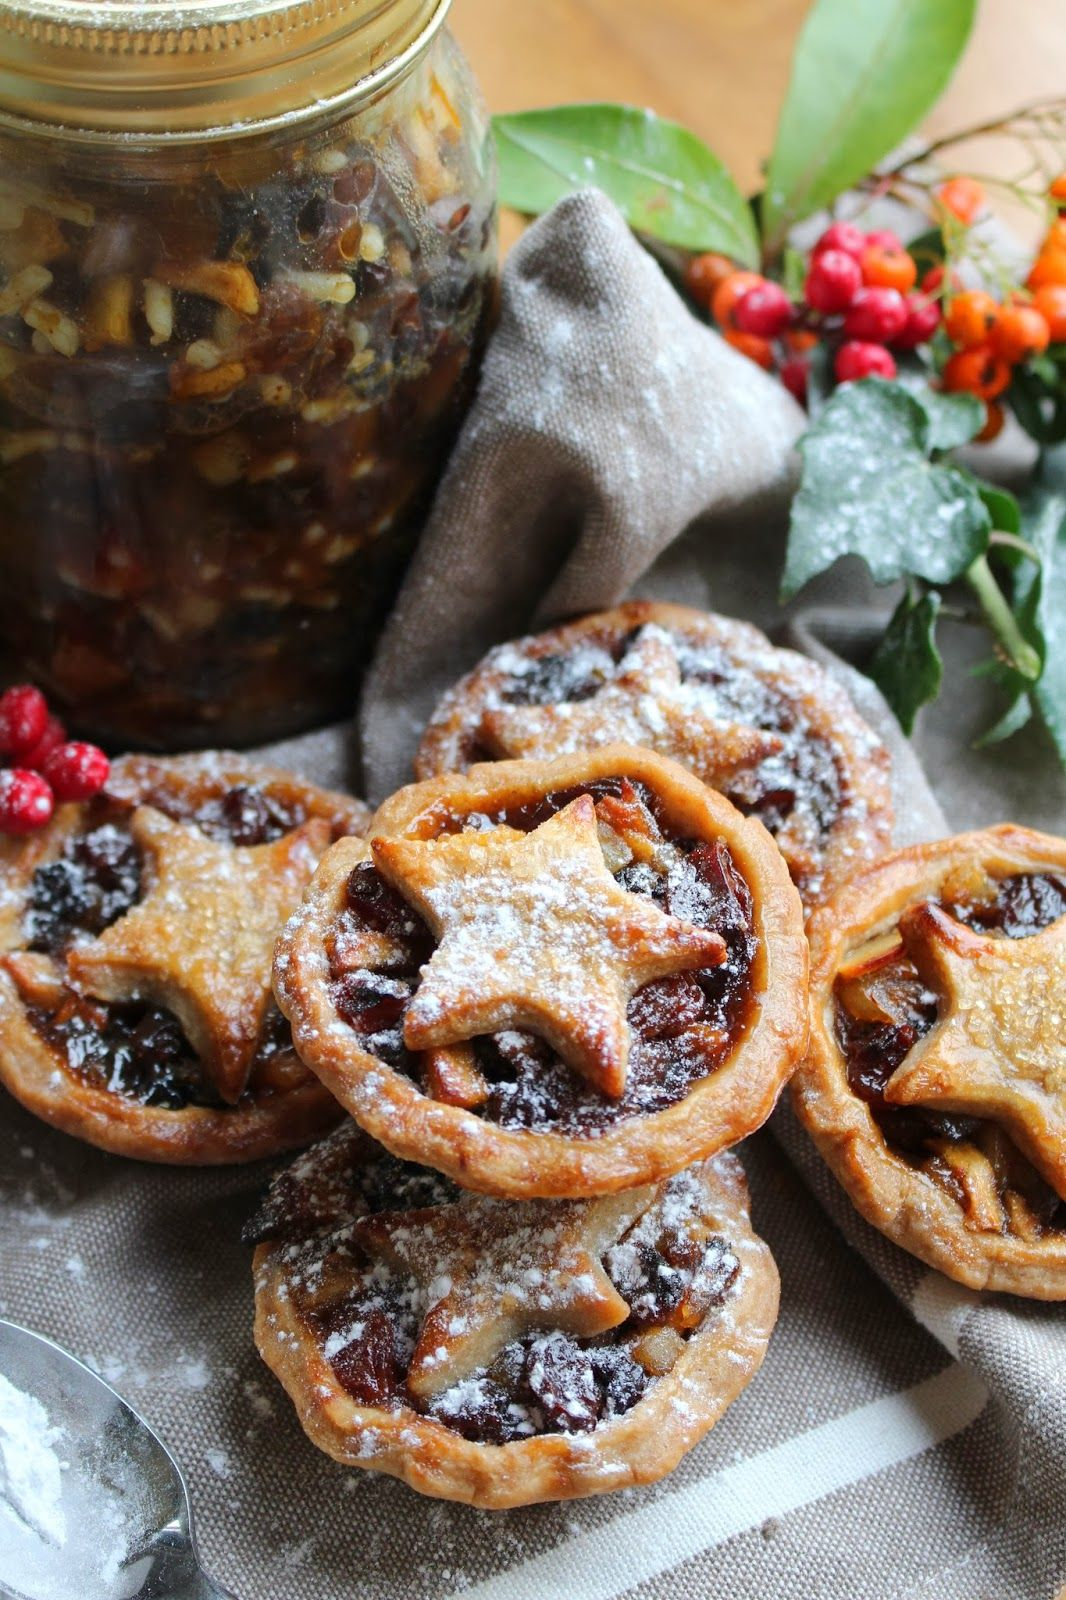 katie's kitchen journal: Gingerbread Spiced Mince Pies